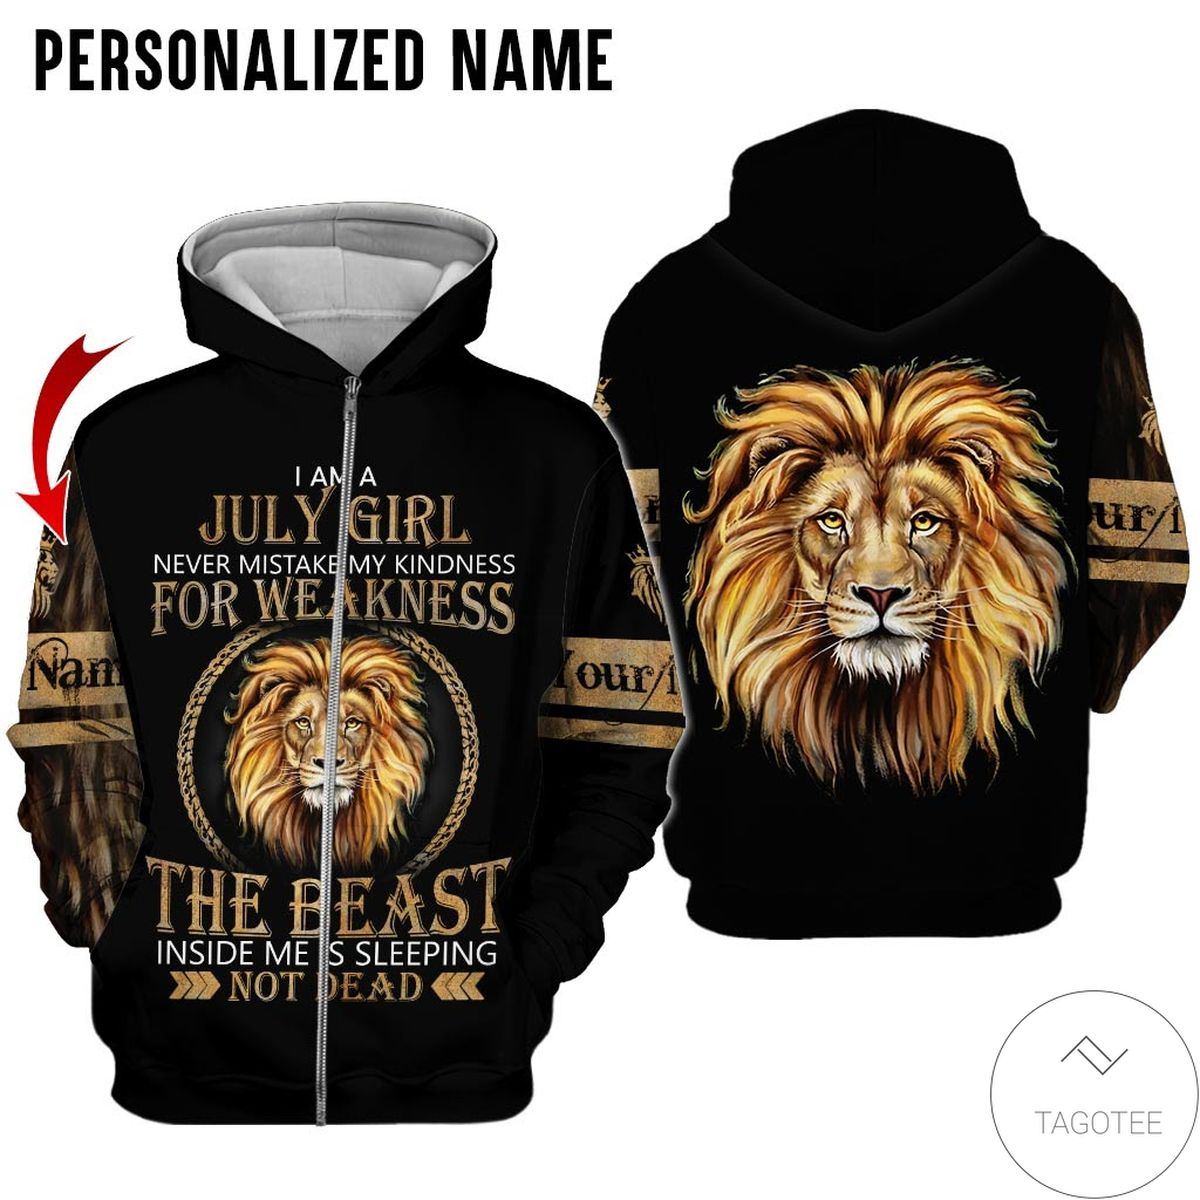 Father's Day Gift Personalized Namelion I'm July Girl All Over Print Hoodie